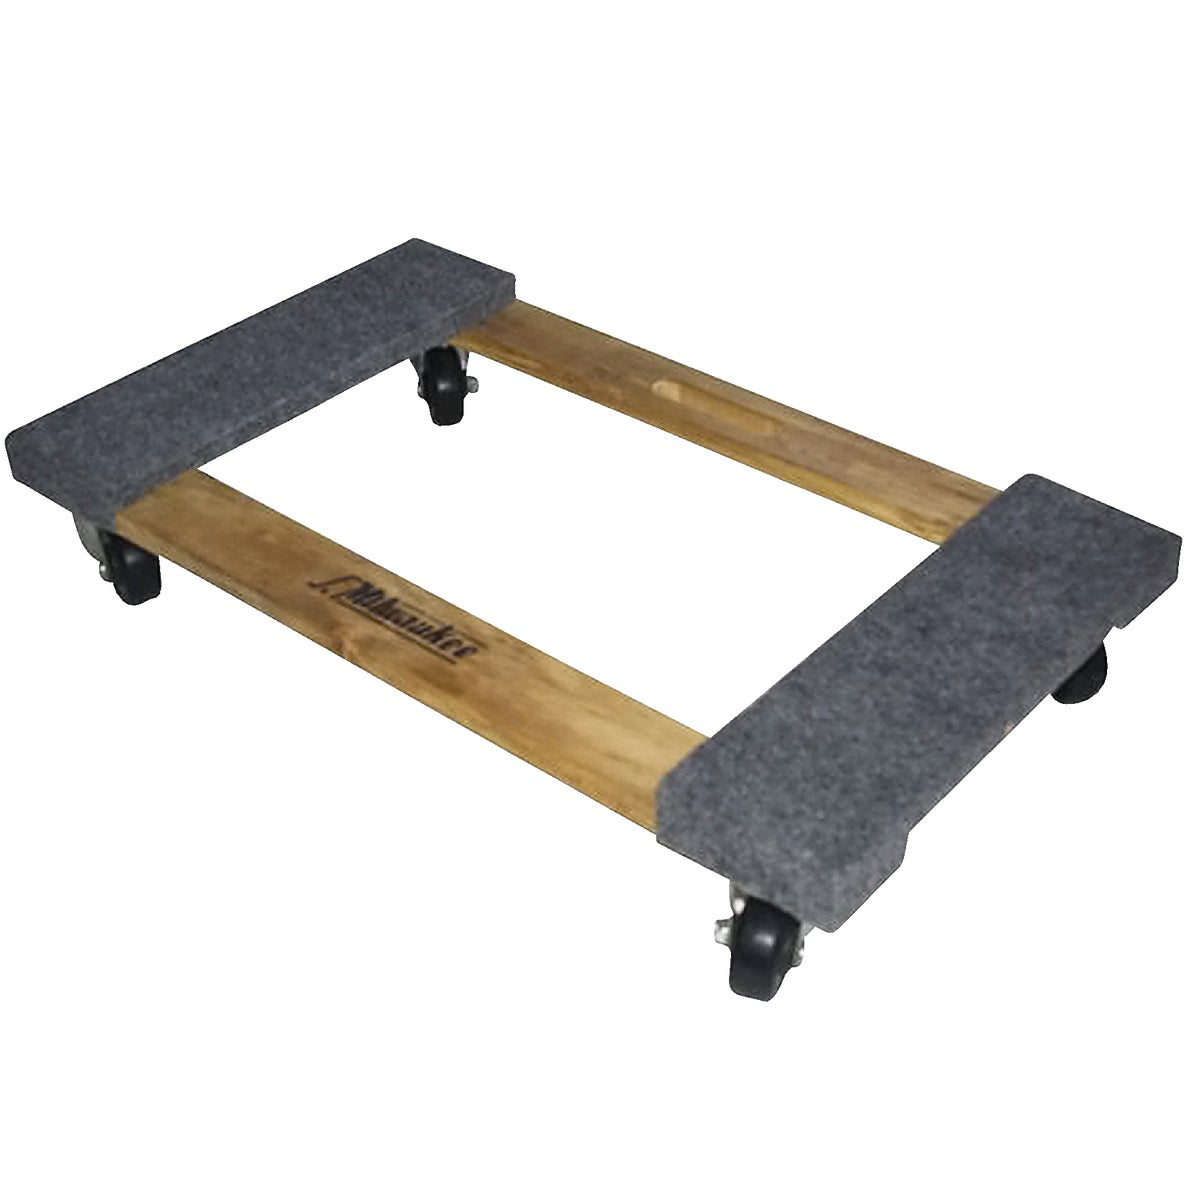 1000LB FURNITURE DOLLY - 33800 by Gleason Indust Prod